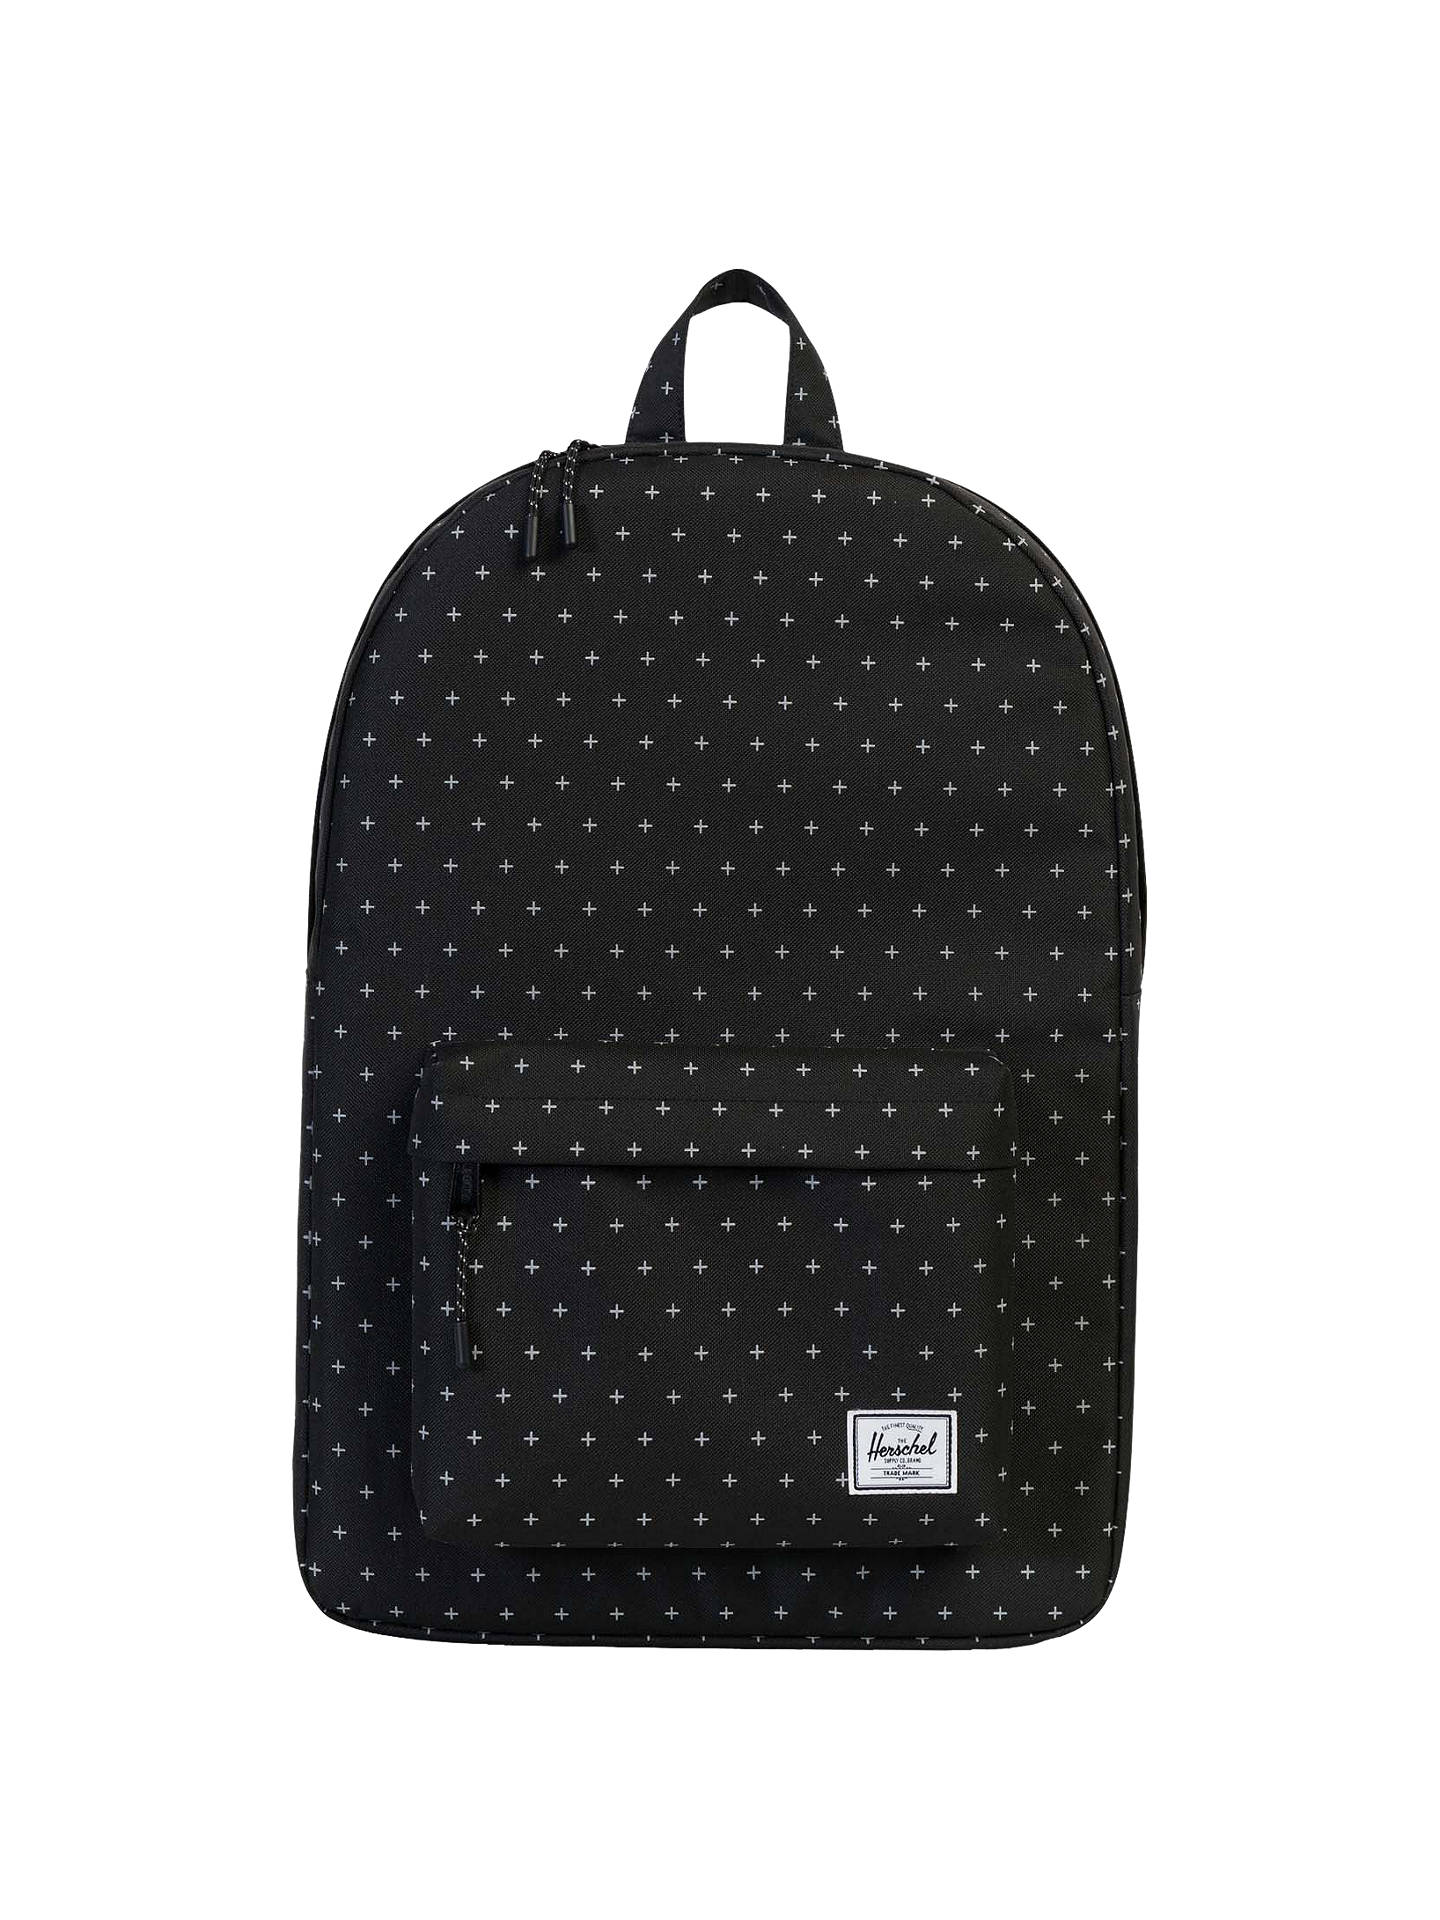 Herschel Supply Co. Classic Backpack, Black Gridlock at John Lewis ... 72ae1c64a7